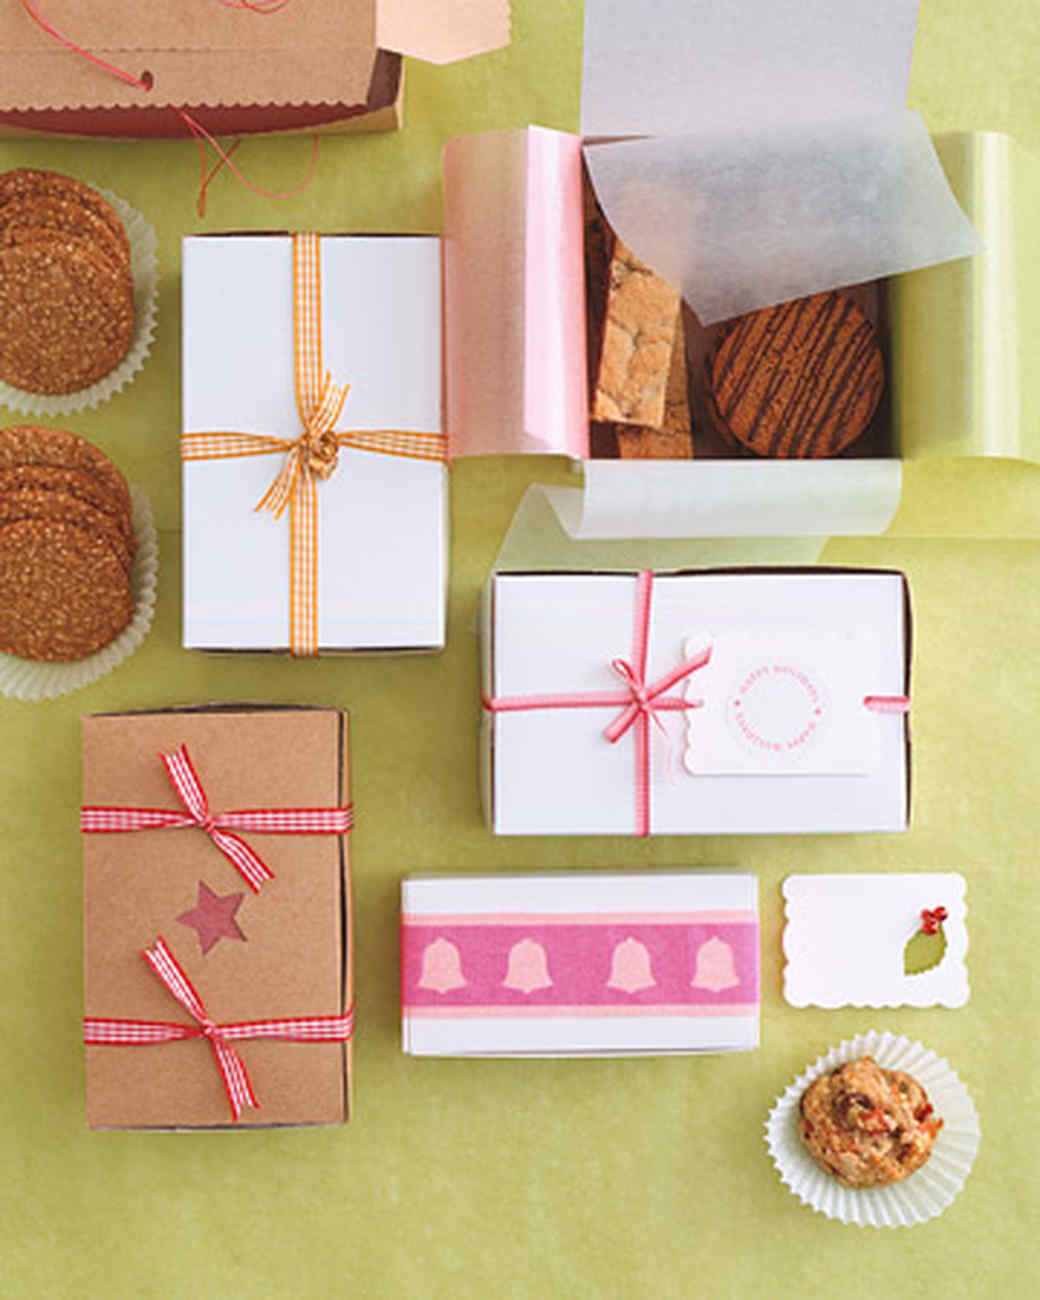 8 Steps To Hosting A Cookie Swap Martha Stewart